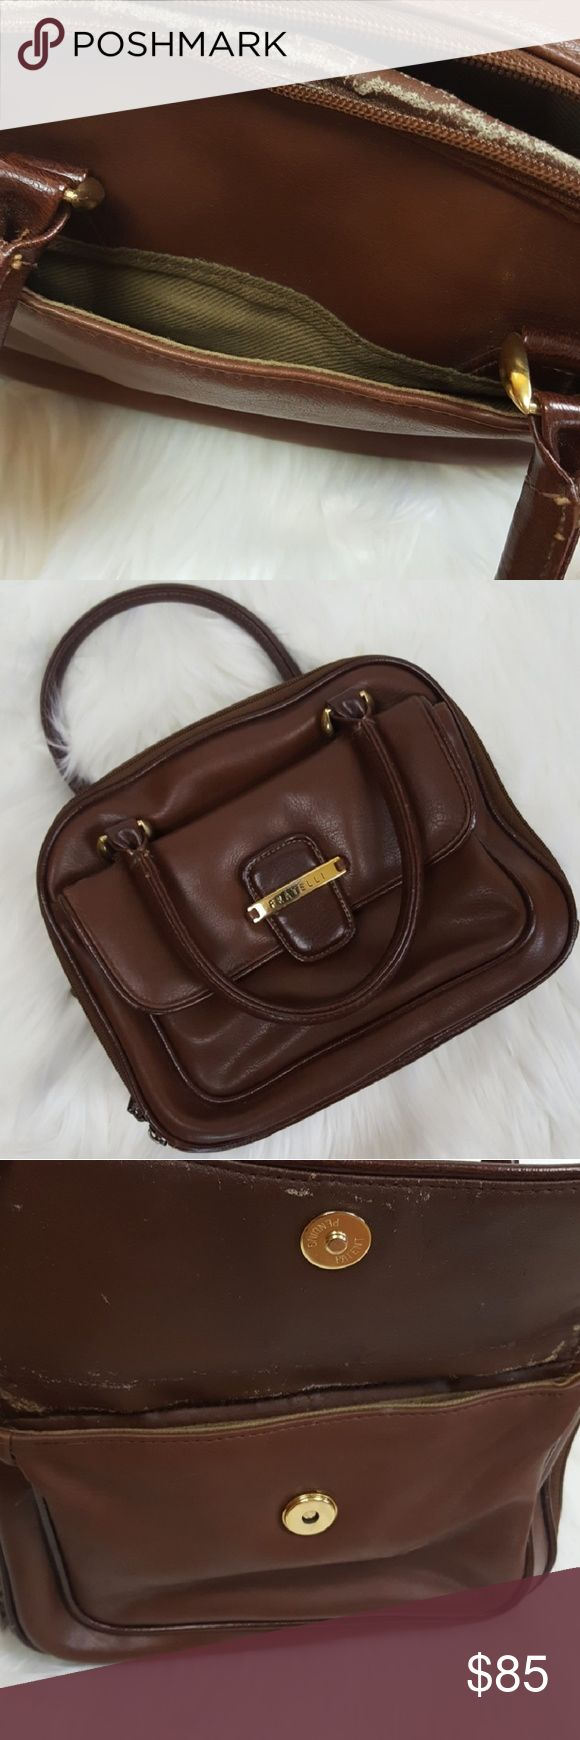 """Vintage FRATELLI Mini Small Brown Gold Handbag A beautiful vintage and well-aged brown handbag by FRATELLI.  • Has Gold tone accents. • 2 zipper compartments. • 1 compartment has the cutest organizer with tabs labeled: Check Book, Credit Card Cash, Coupons Receipts, Agenda, Cosmetics. • The outside is in great condition. However, the inside is a bit scuffed but not noticeable while wearing. I think it adds a wonderful vintage look to it!  • Strap Drop 6"""". • 10""""L x 4""""W x 8""""H.  • A wonderful…"""